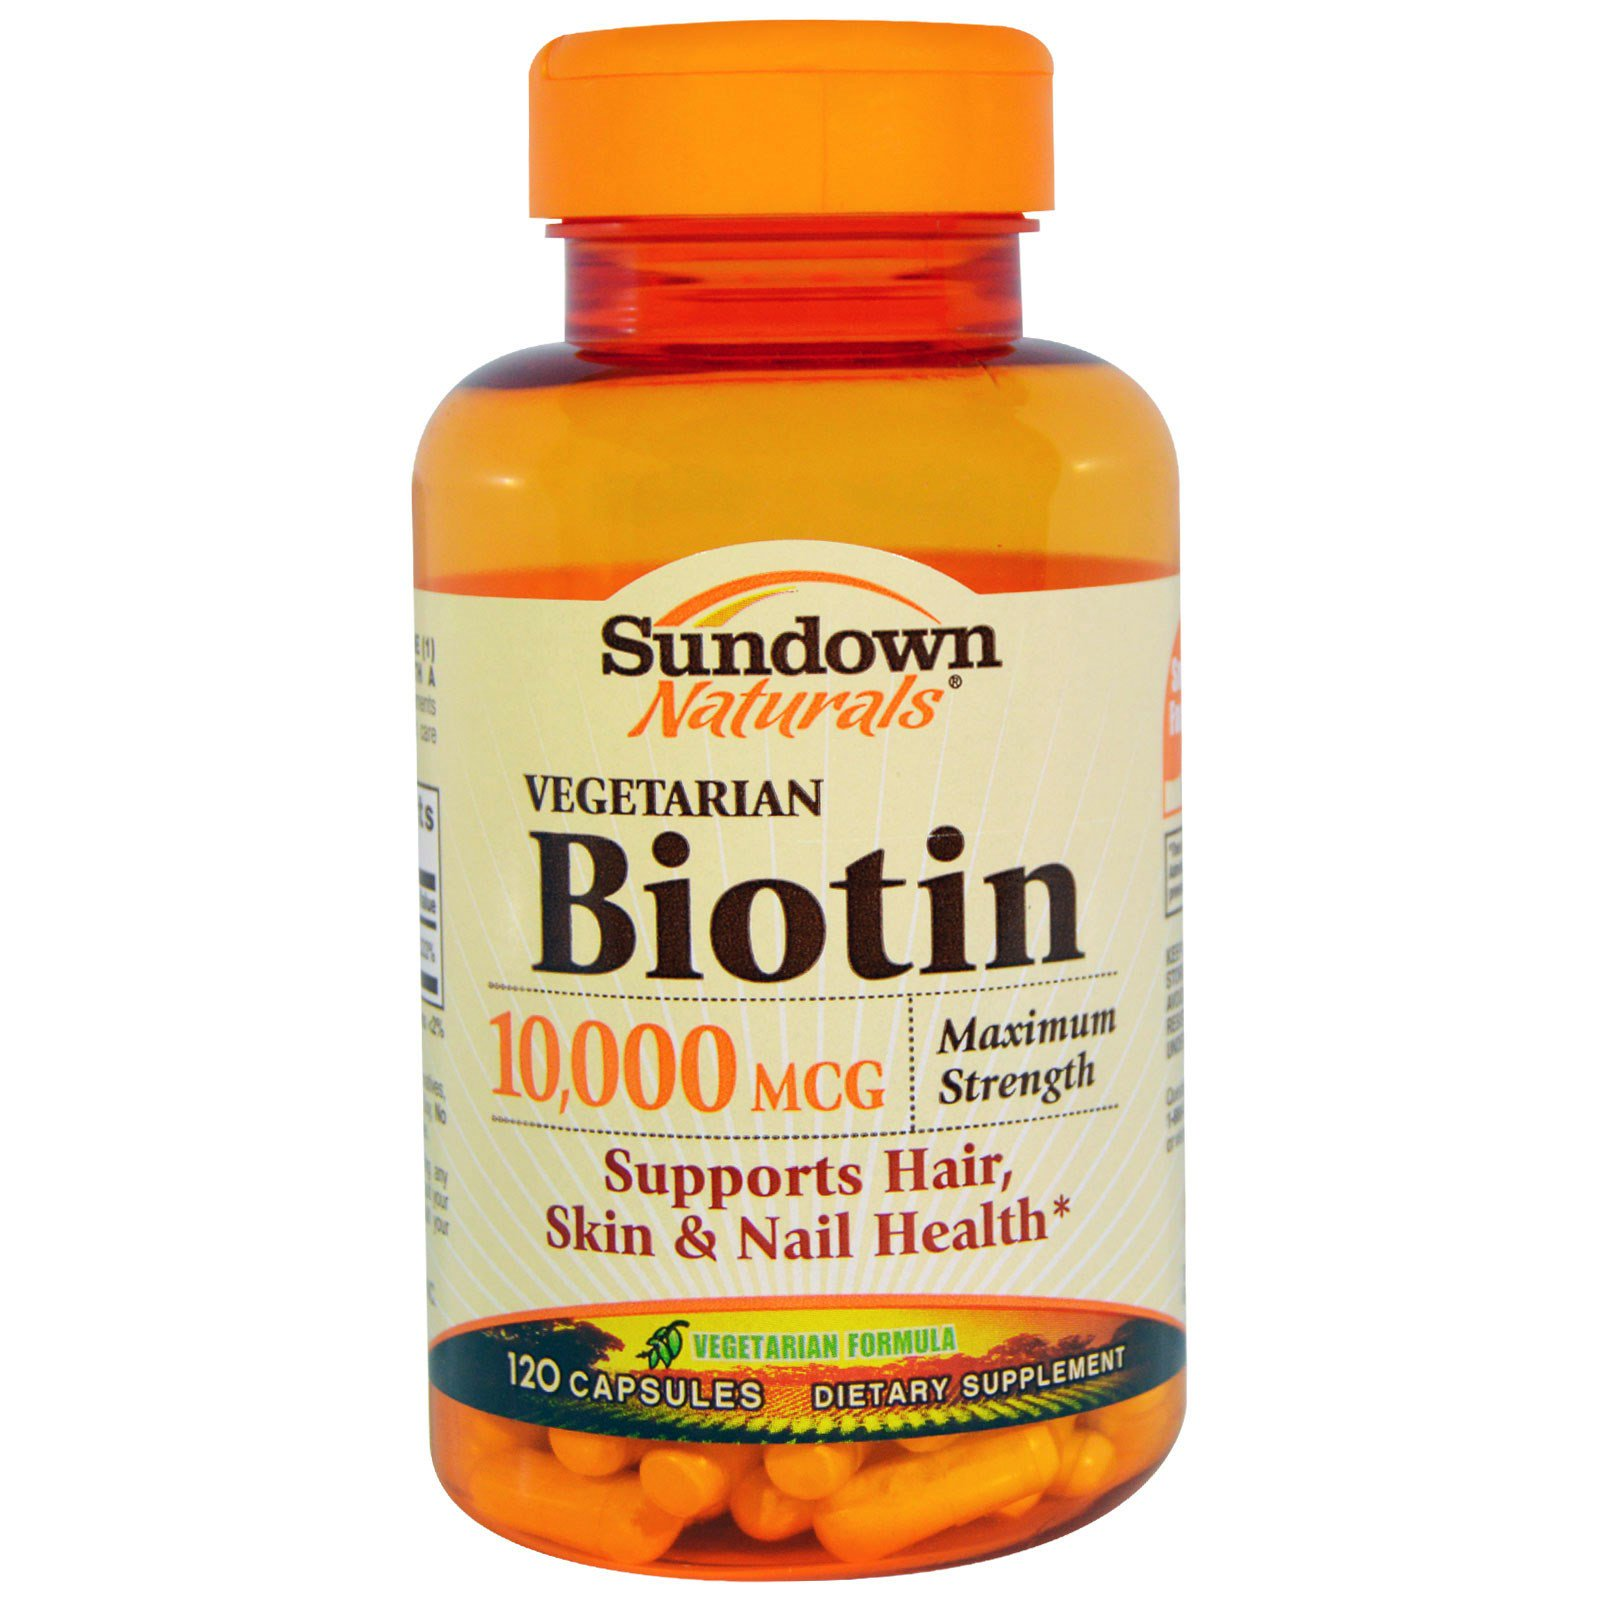 Sundown Naturals Biotin Vegetarian Maximum Strength 10 000 Mcg 120 Capsules